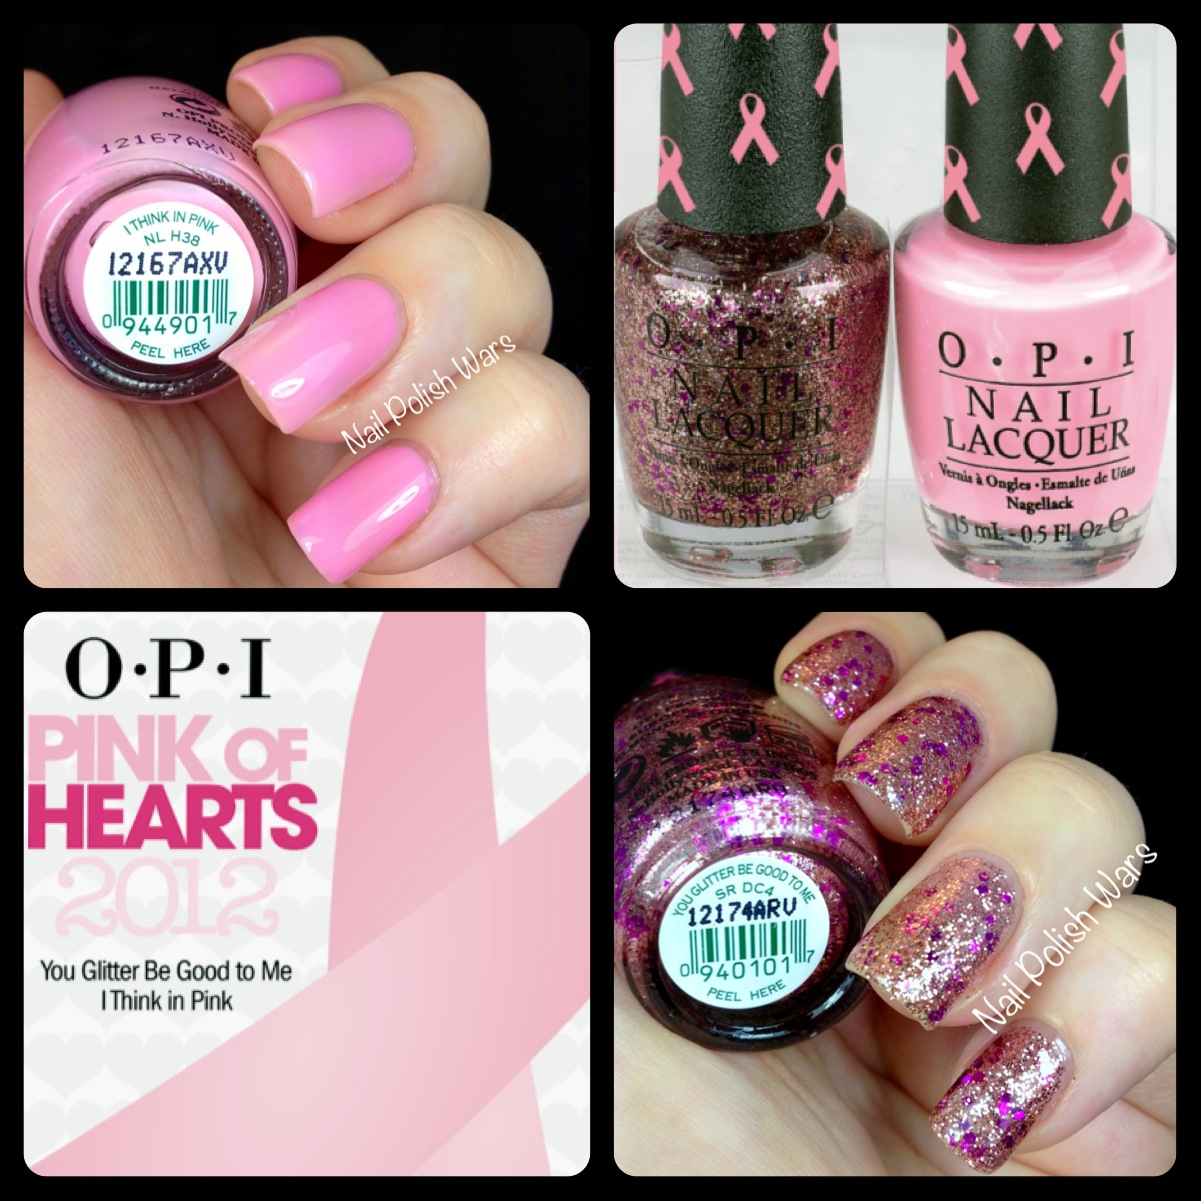 Nail Polish Wars: OPI Pink of Hearts